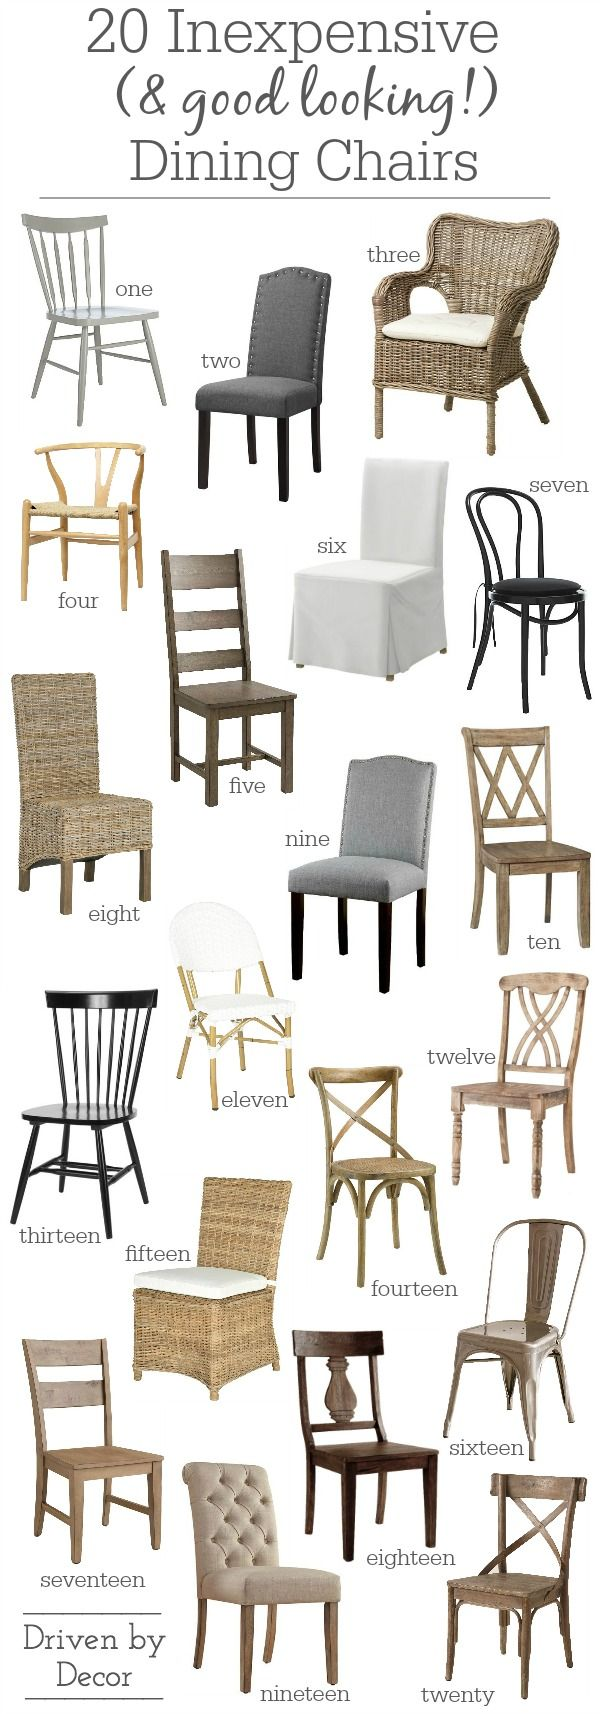 cheap table chairs adjustable height kids chair 15 inexpensive dining that don t look blogger home great post on where to find attractive and affordable room along with links 20 favorites diningchairs